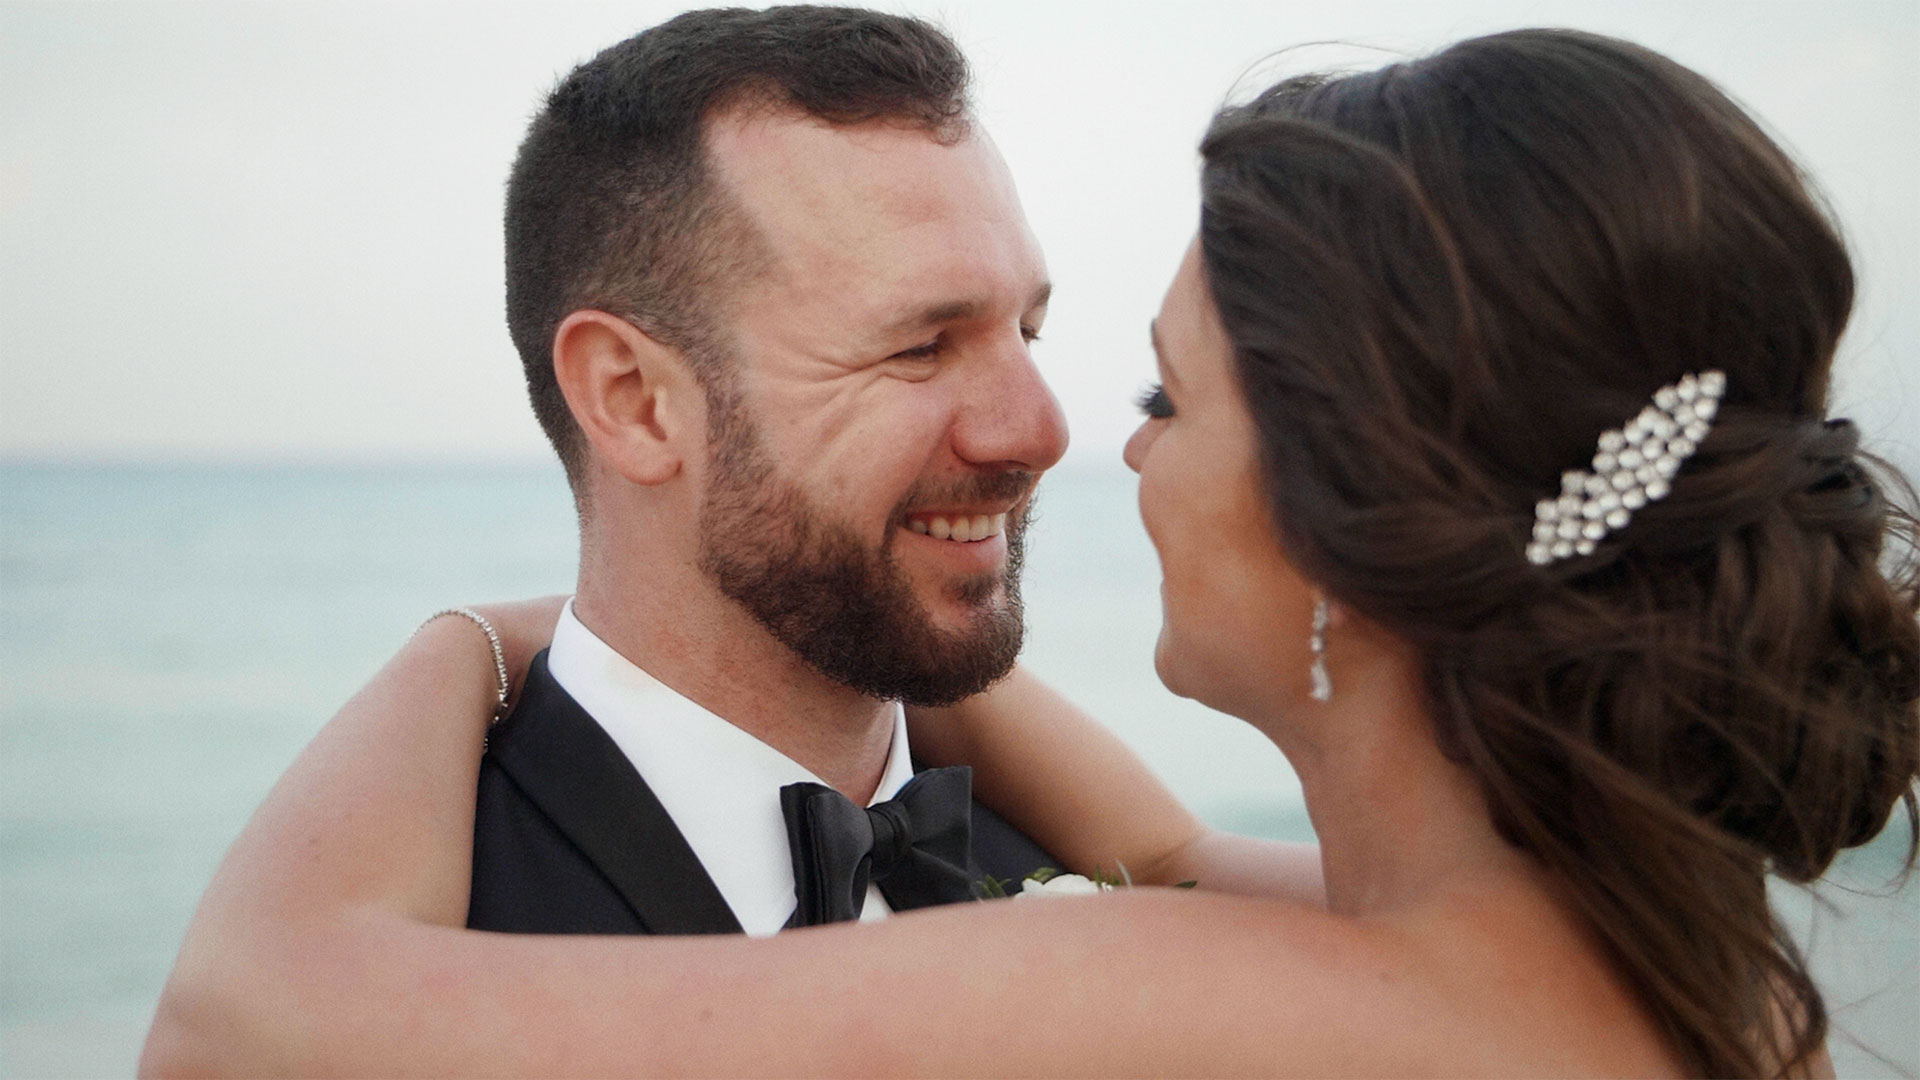 groom smiles at bride during their playa del carmen wedding at Azul fives resort by destination wedding videographer kismet creative